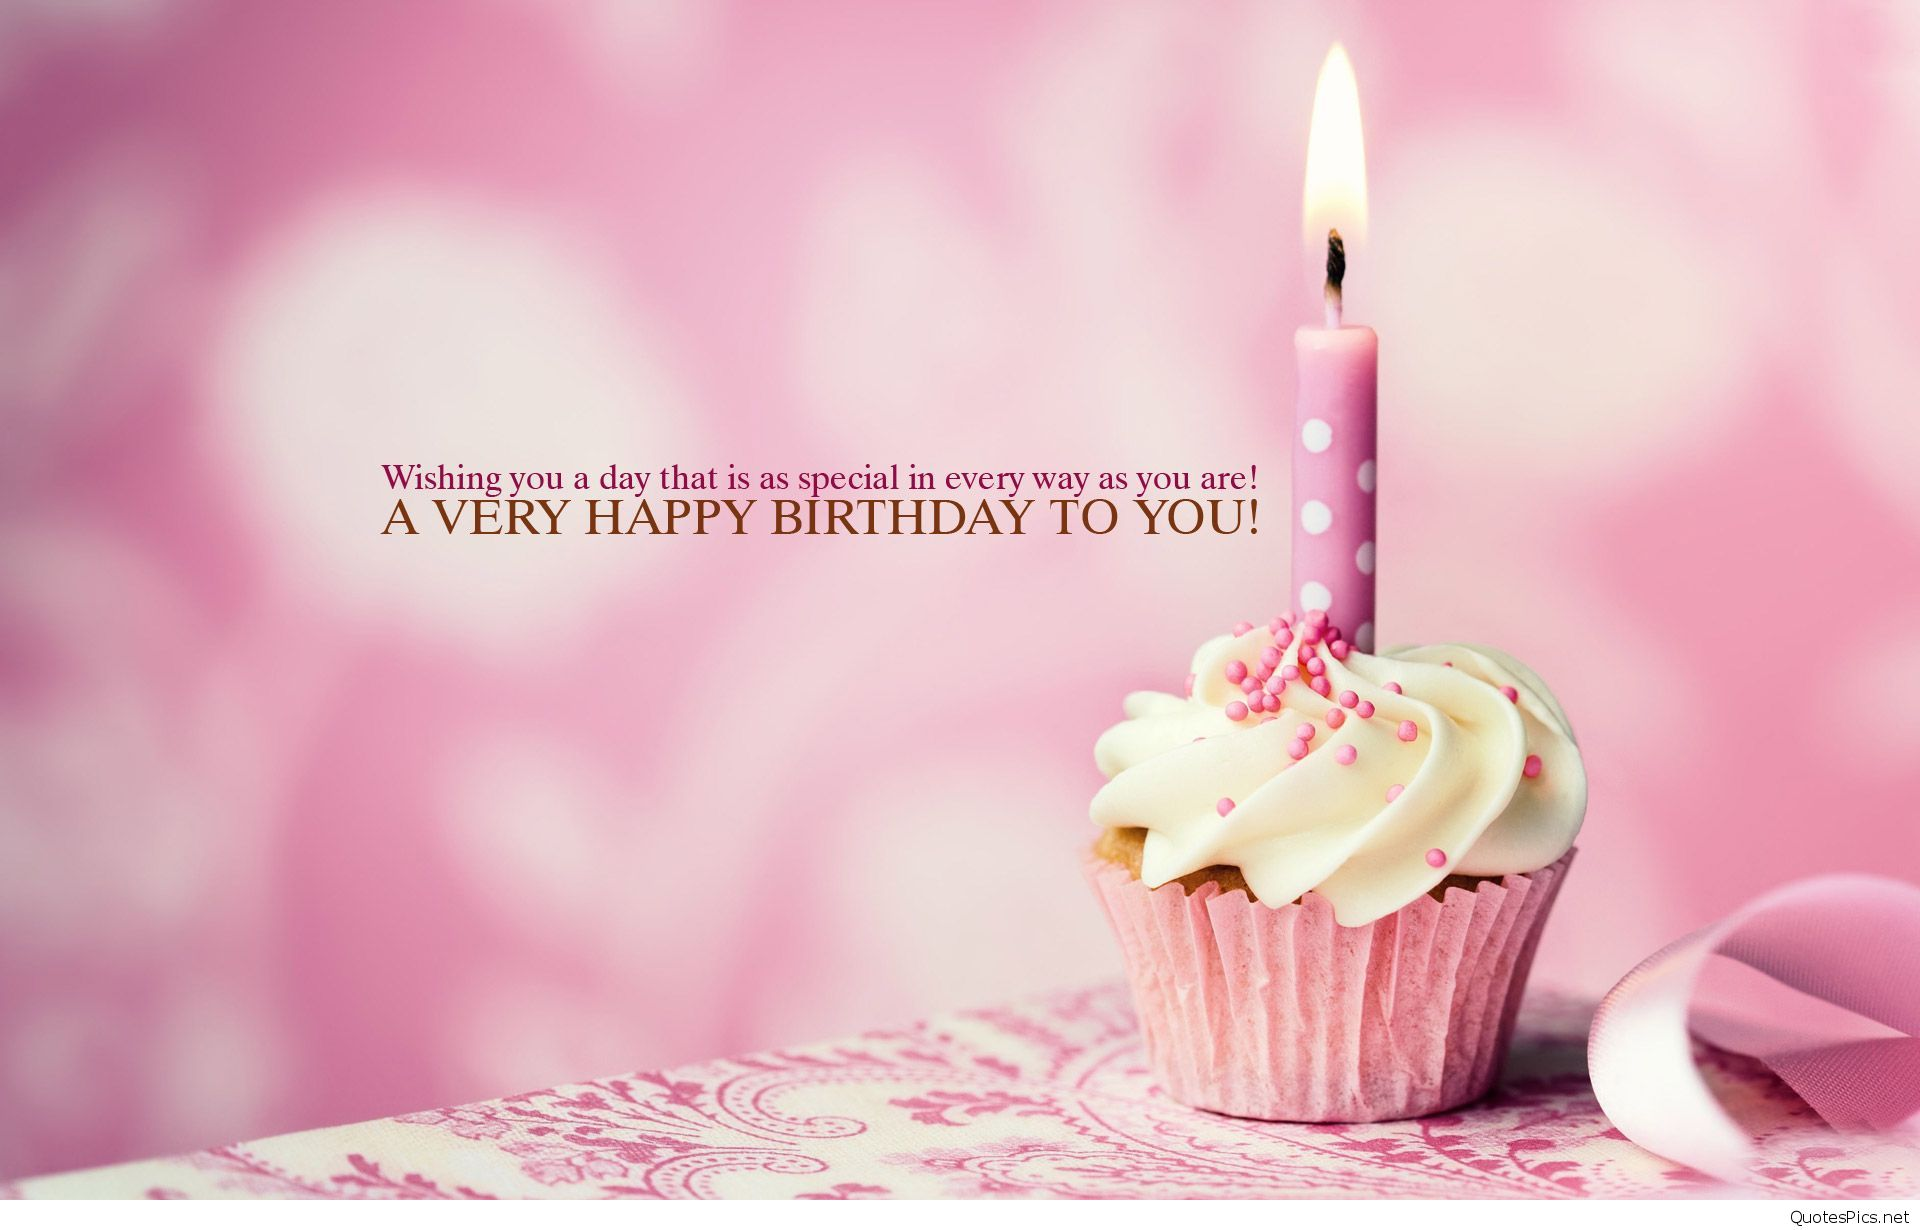 happy birthday wallpaper with wishes ; dca5639d563f0a02a032f8473fc2cea9